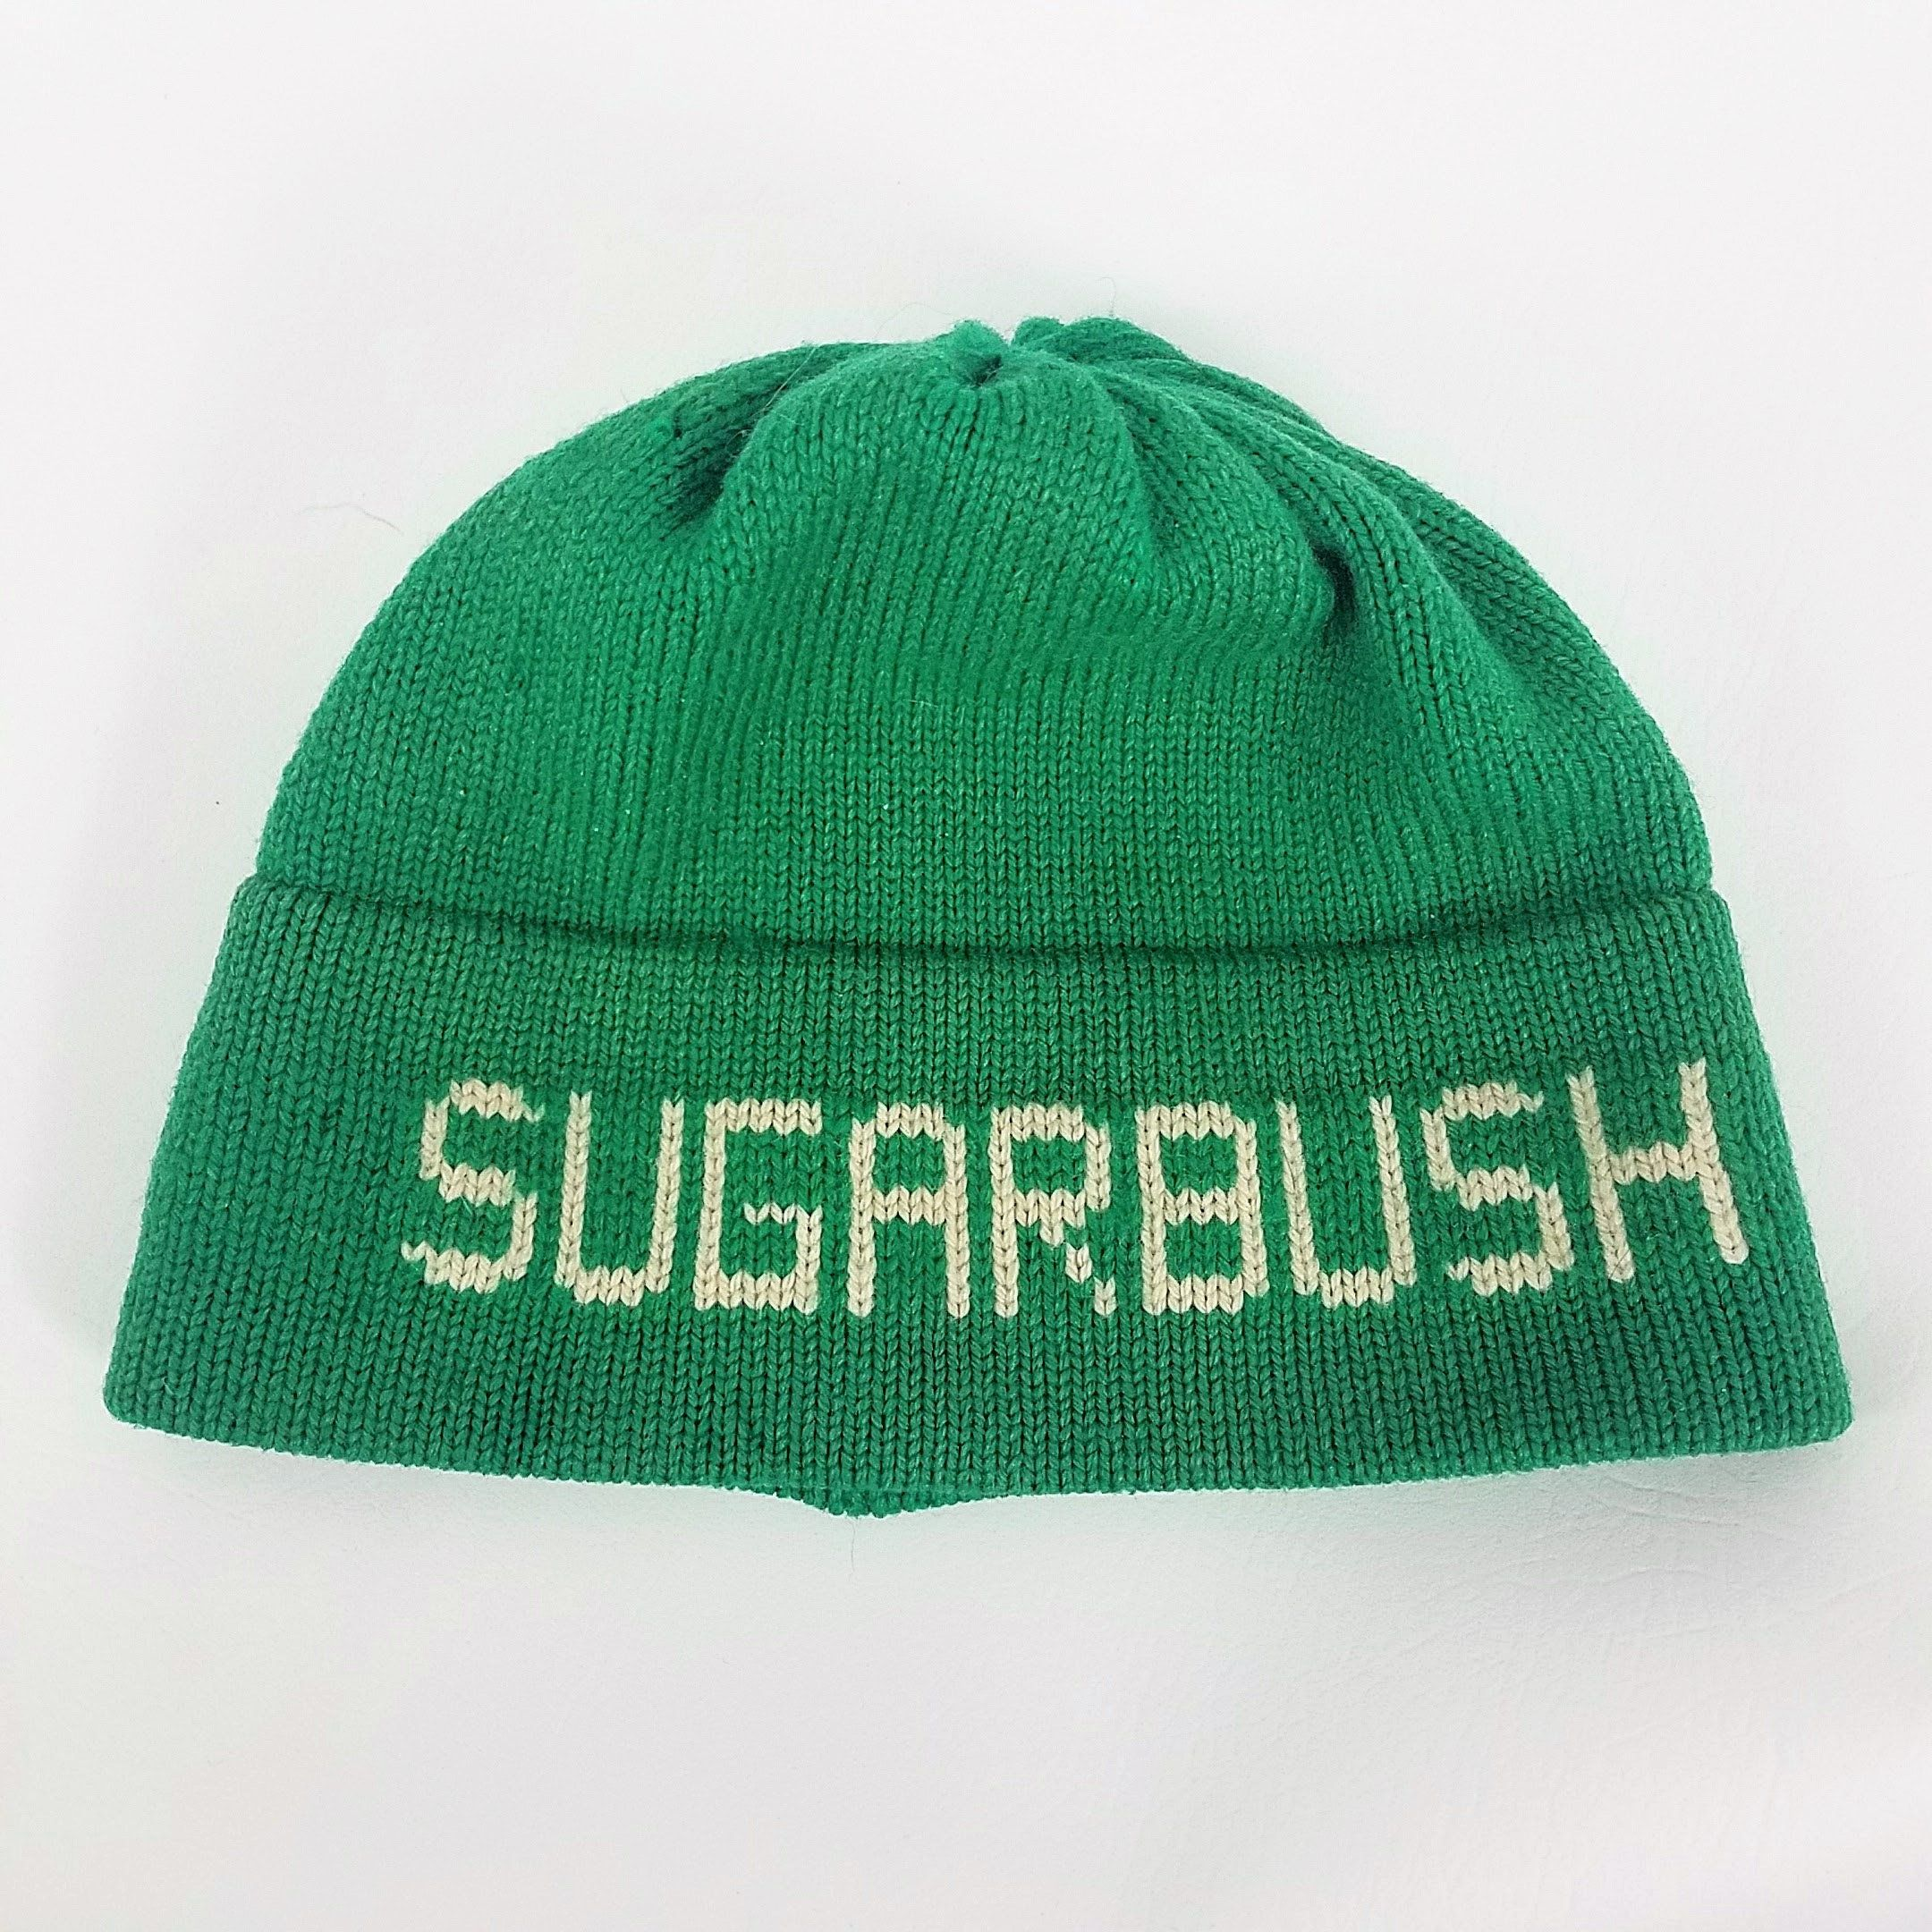 Vintage Moriarty Hat Wool Ski Cap Sugarbush Stowe Vermont Green Beanie  Toque Knit 100% Wool by TraSheeWomen on Etsy  moriartyhat  moriarty  beanie   cap ... f58b30432899